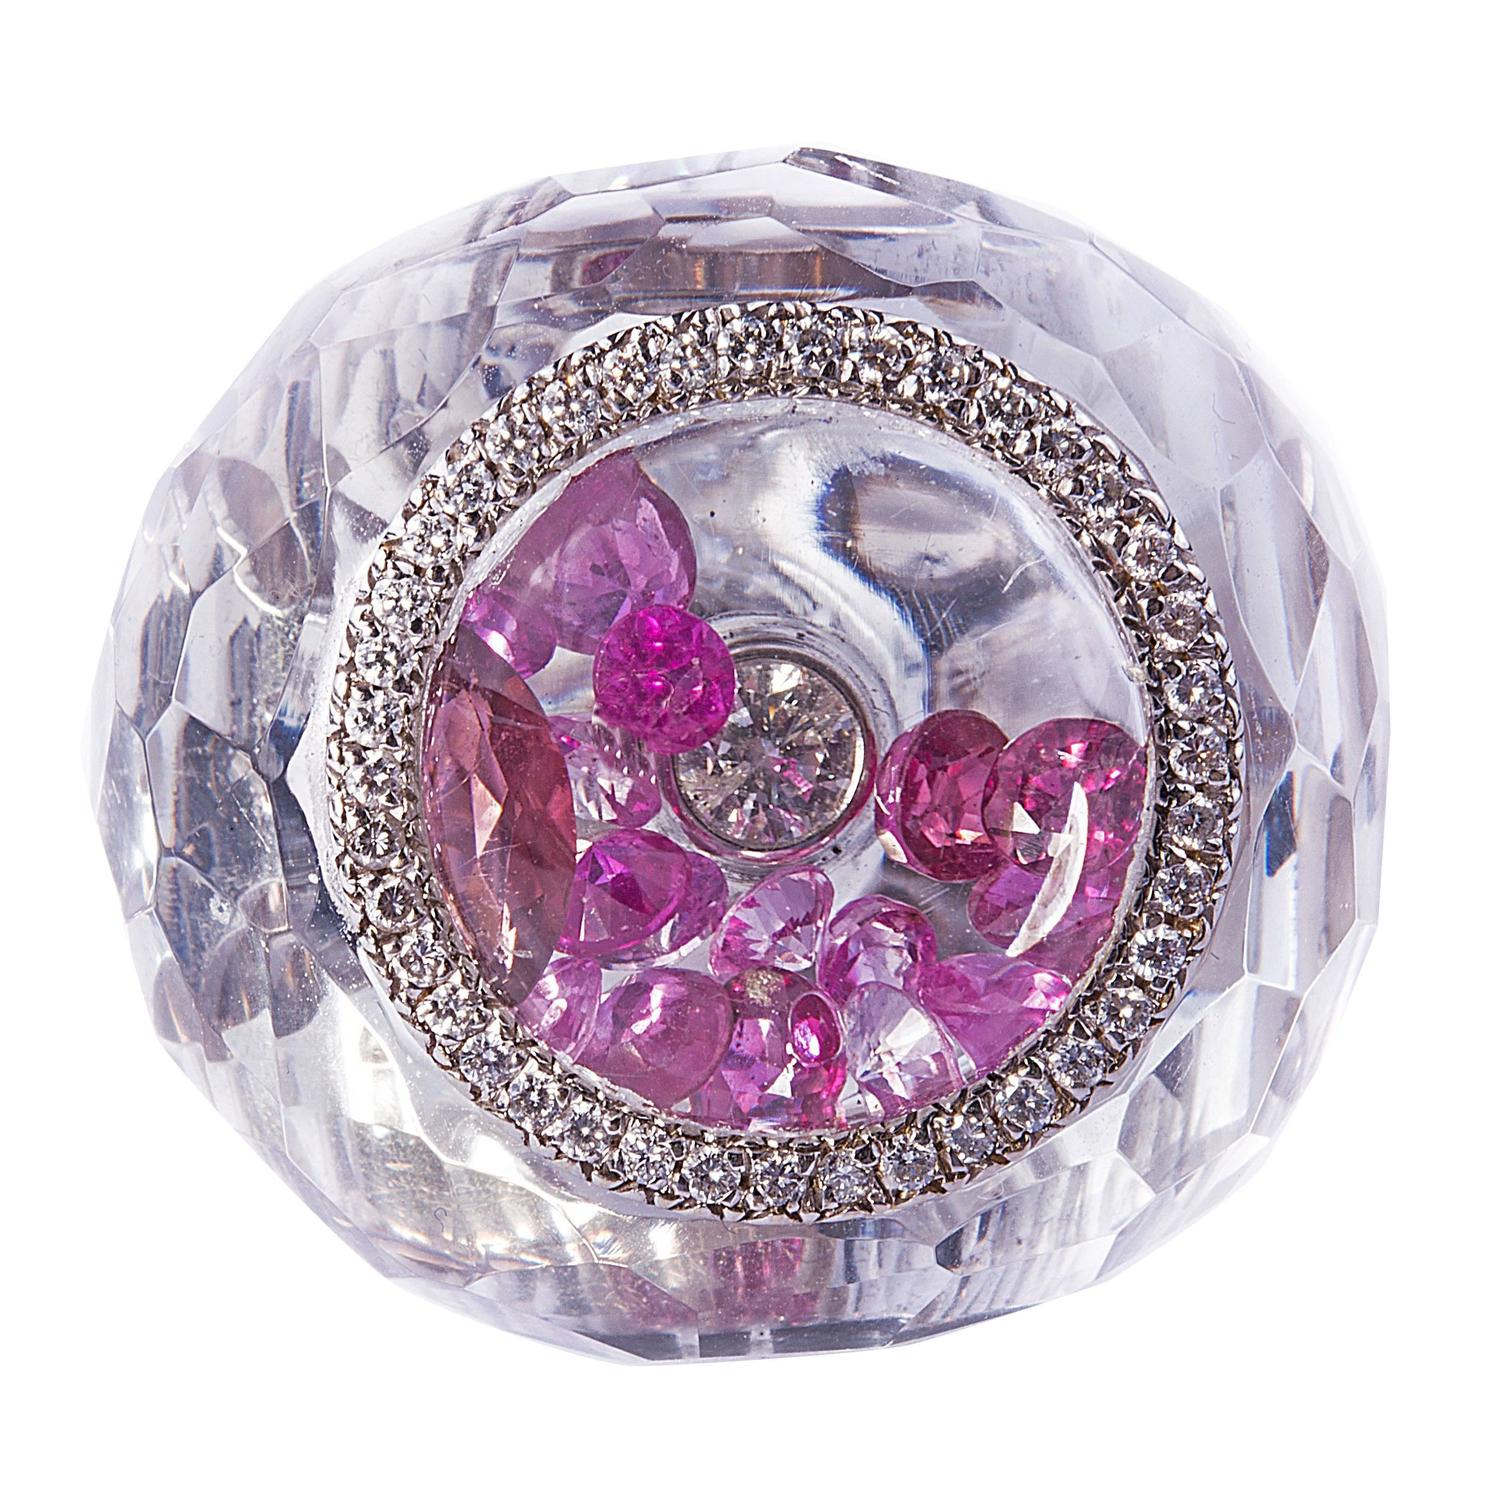 and frangipani amethyst lilac sb sterling faceted item sapphire ring silver bali from tap store floral